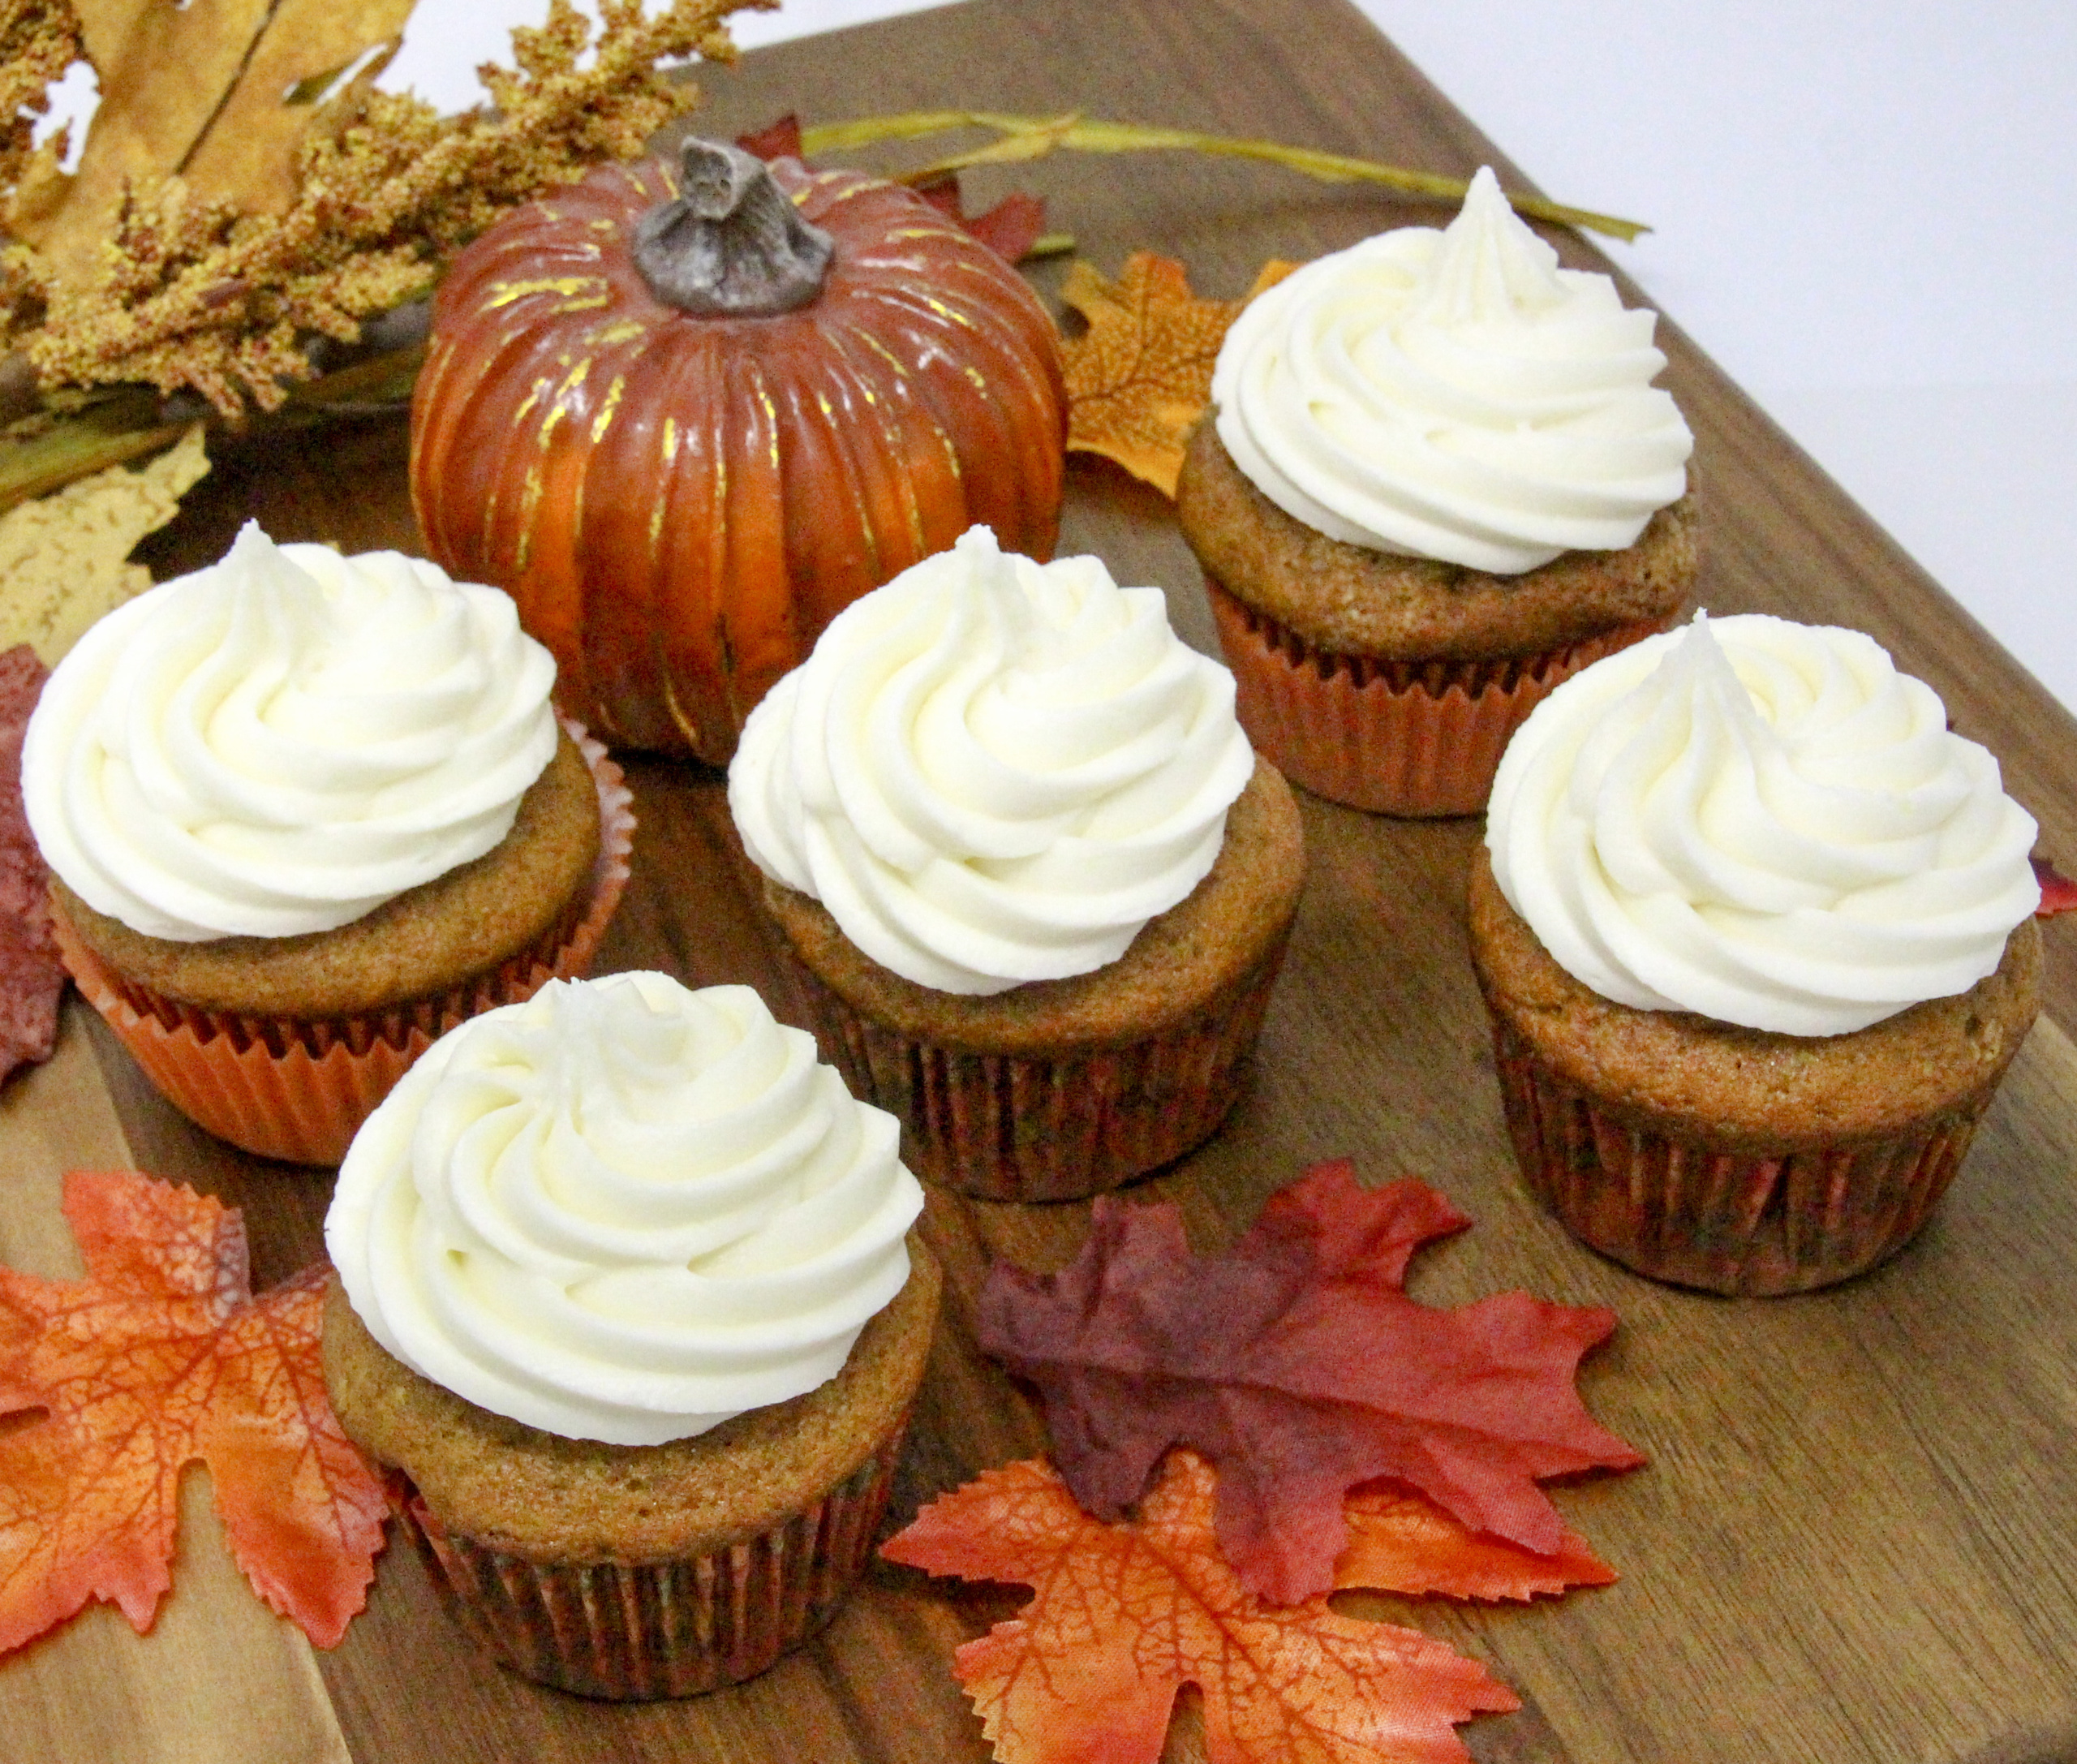 Rich and moist, the warm flavors of these Pumpkin Cupcakes with Cream Cheese Frosting hits the mark for bringing to mind chilly fall days and looking forward to jack-o-lanterns and trick-or-treaters. Recipe shared with permission granted by Krista Davis, author of MURDER OUTSIDE THE LINES.